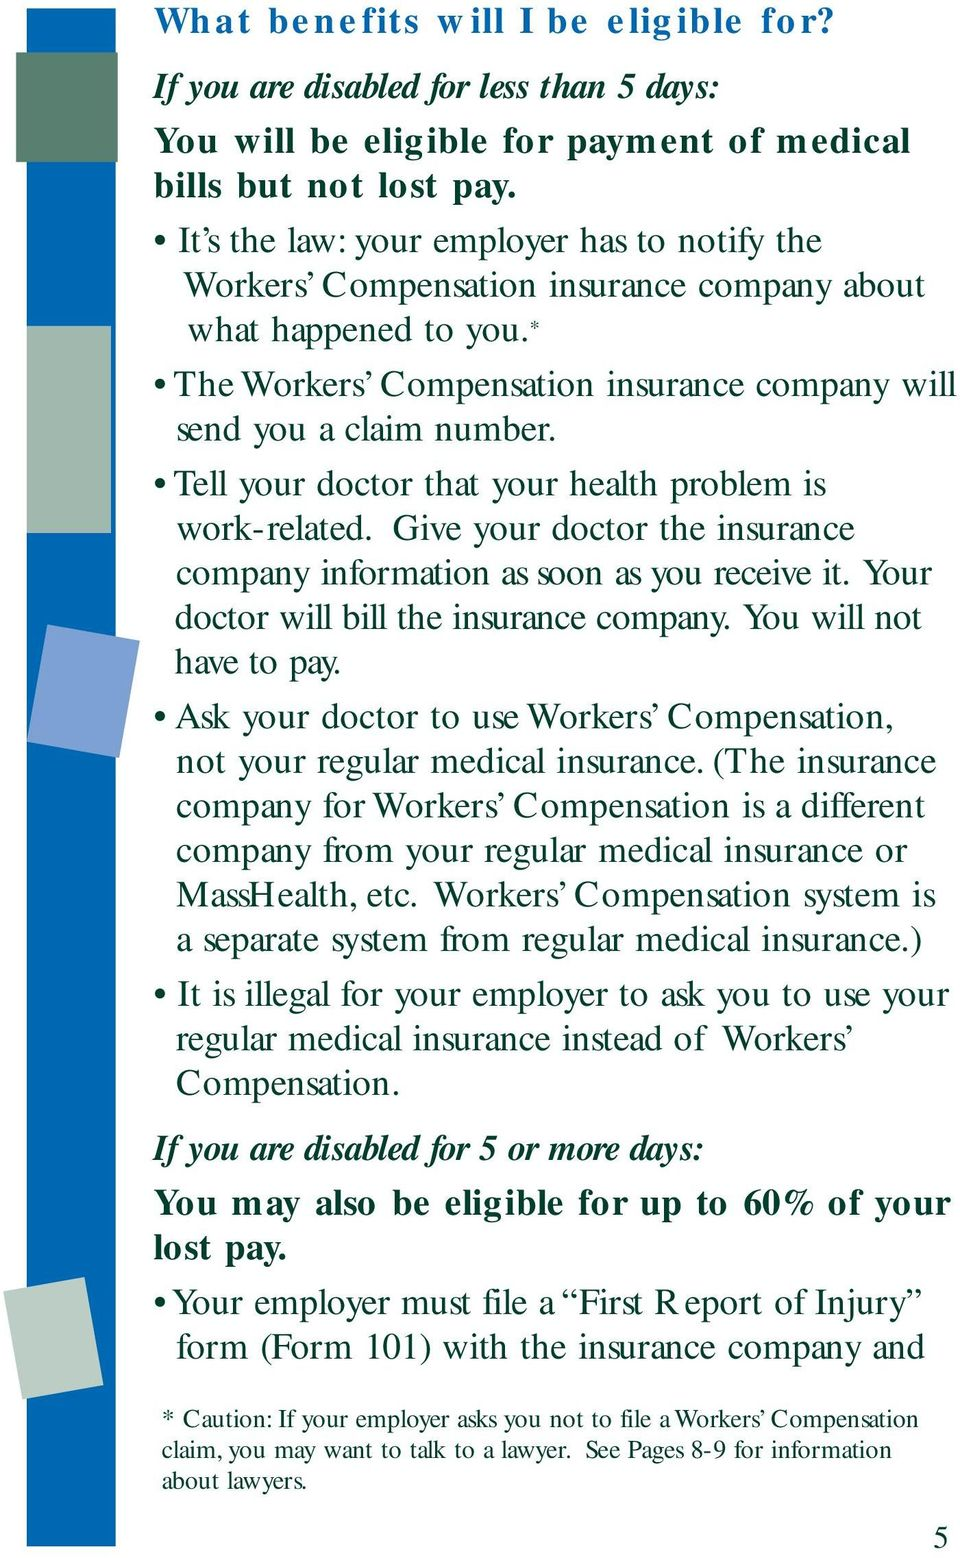 Tell your doctor that your health problem is work-related. Give your doctor the insurance company information as soon as you receive it. Your doctor will bill the insurance company.